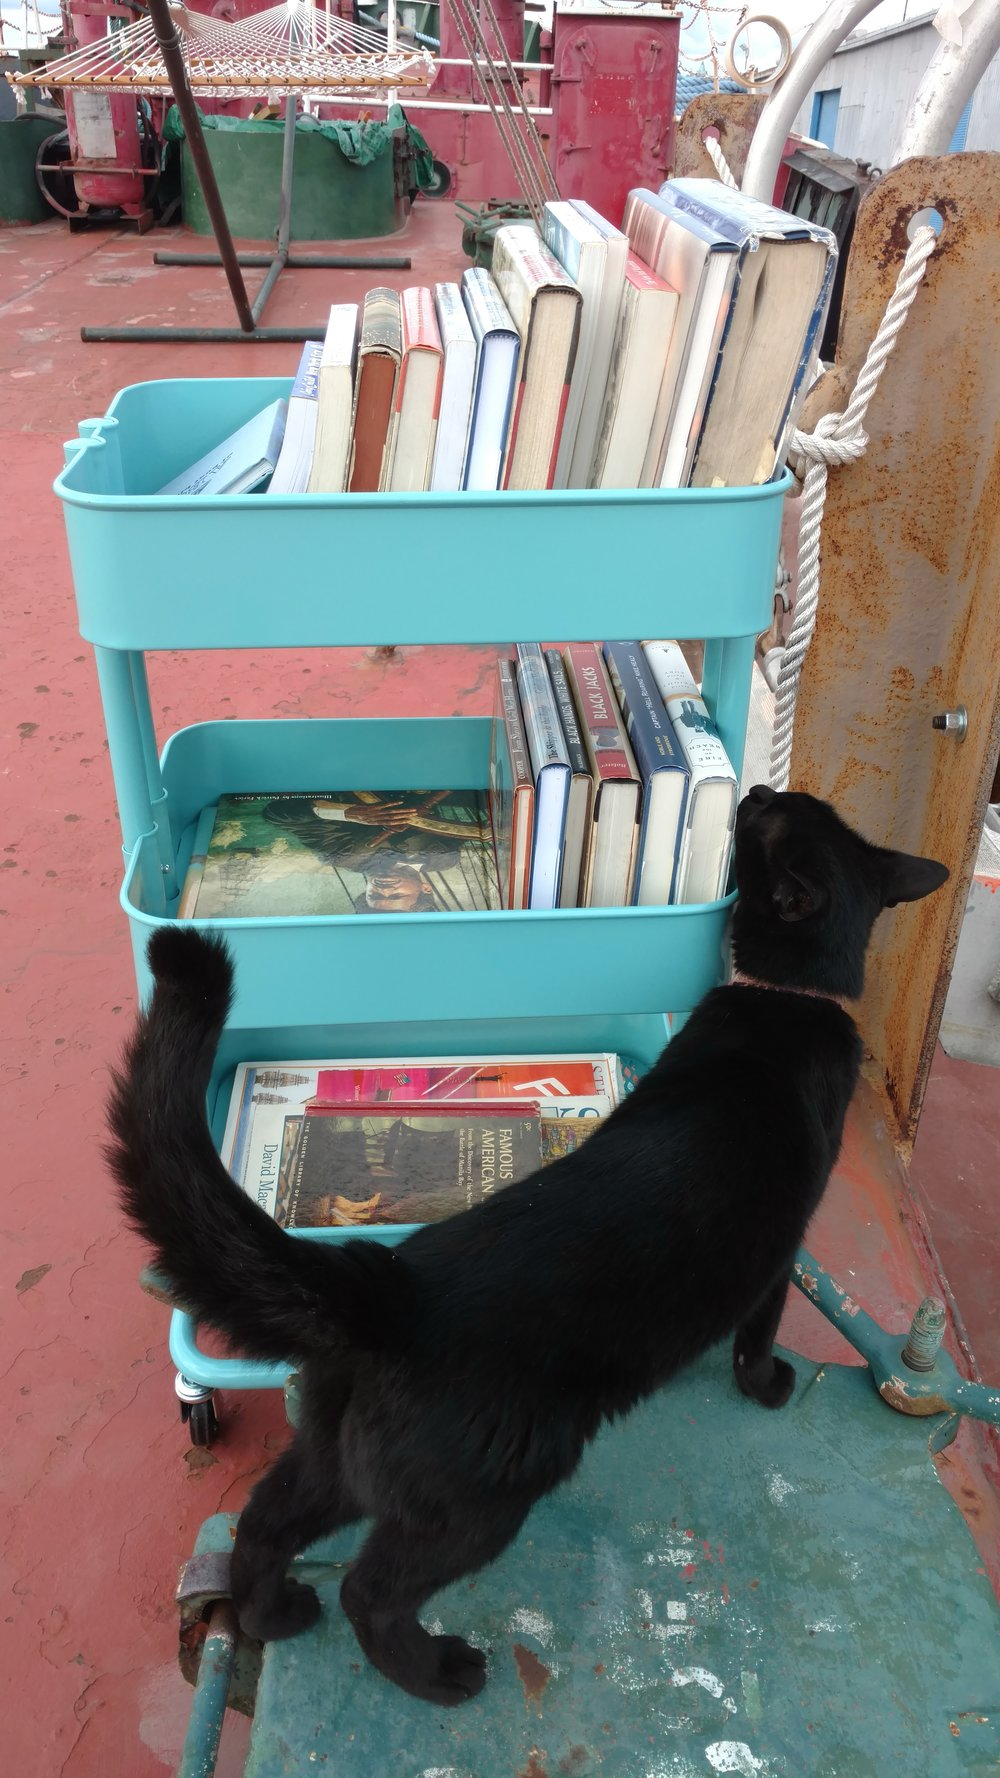 Ship cat Chiclet, invites you to browse PortSide's Maritime library, but She insists that all dogs be on leashes.